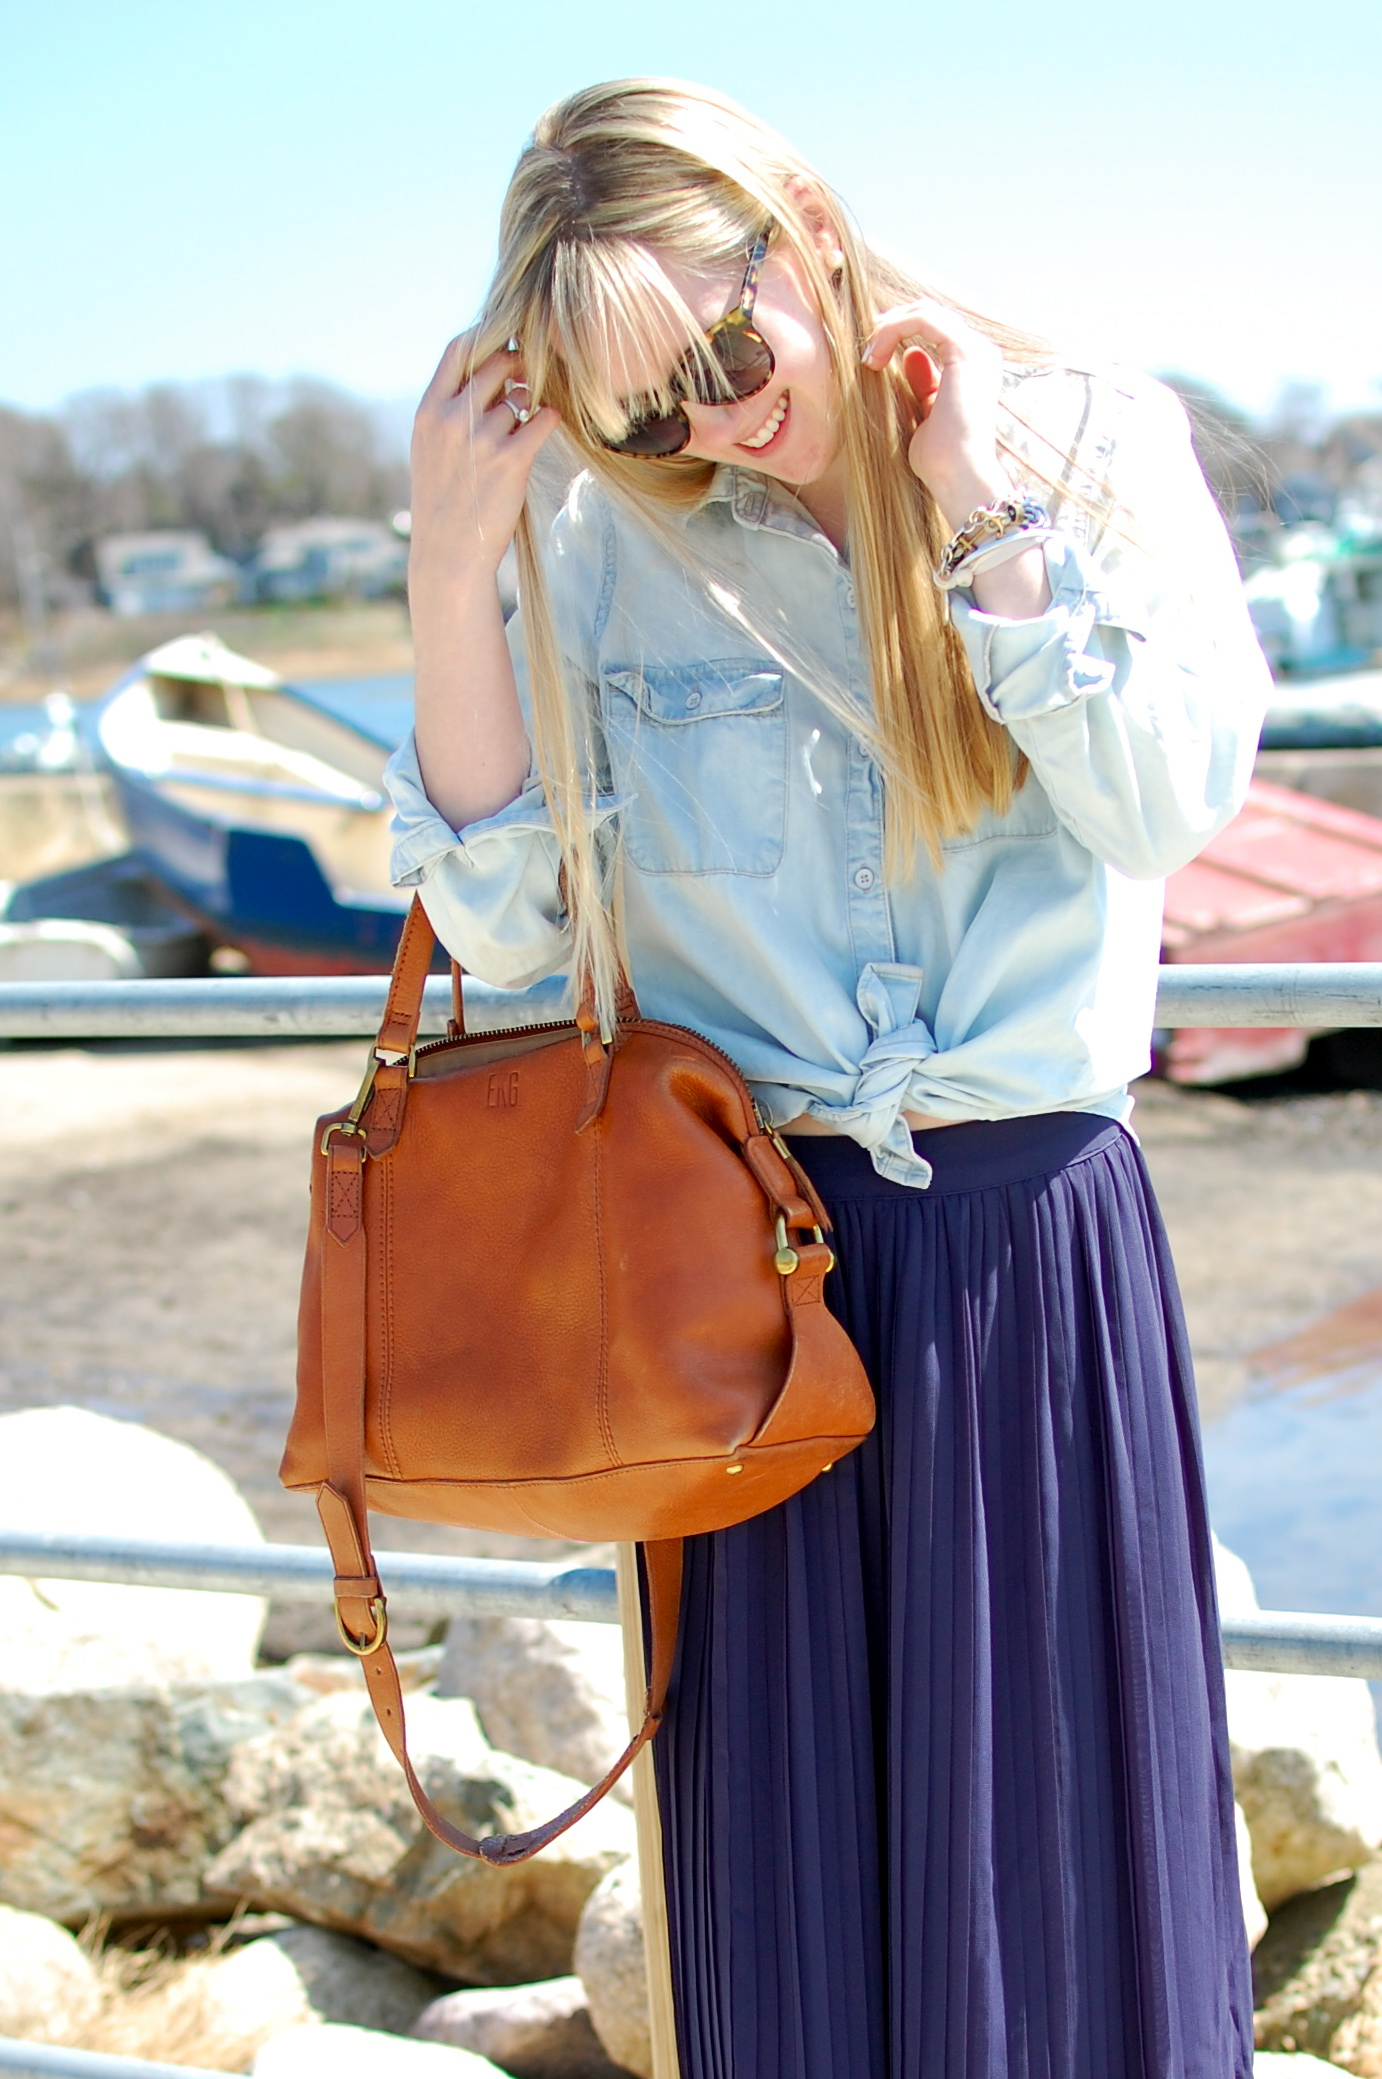 f58da5a6789 OOTD Archives - Page 8 of 27 - shell chic d